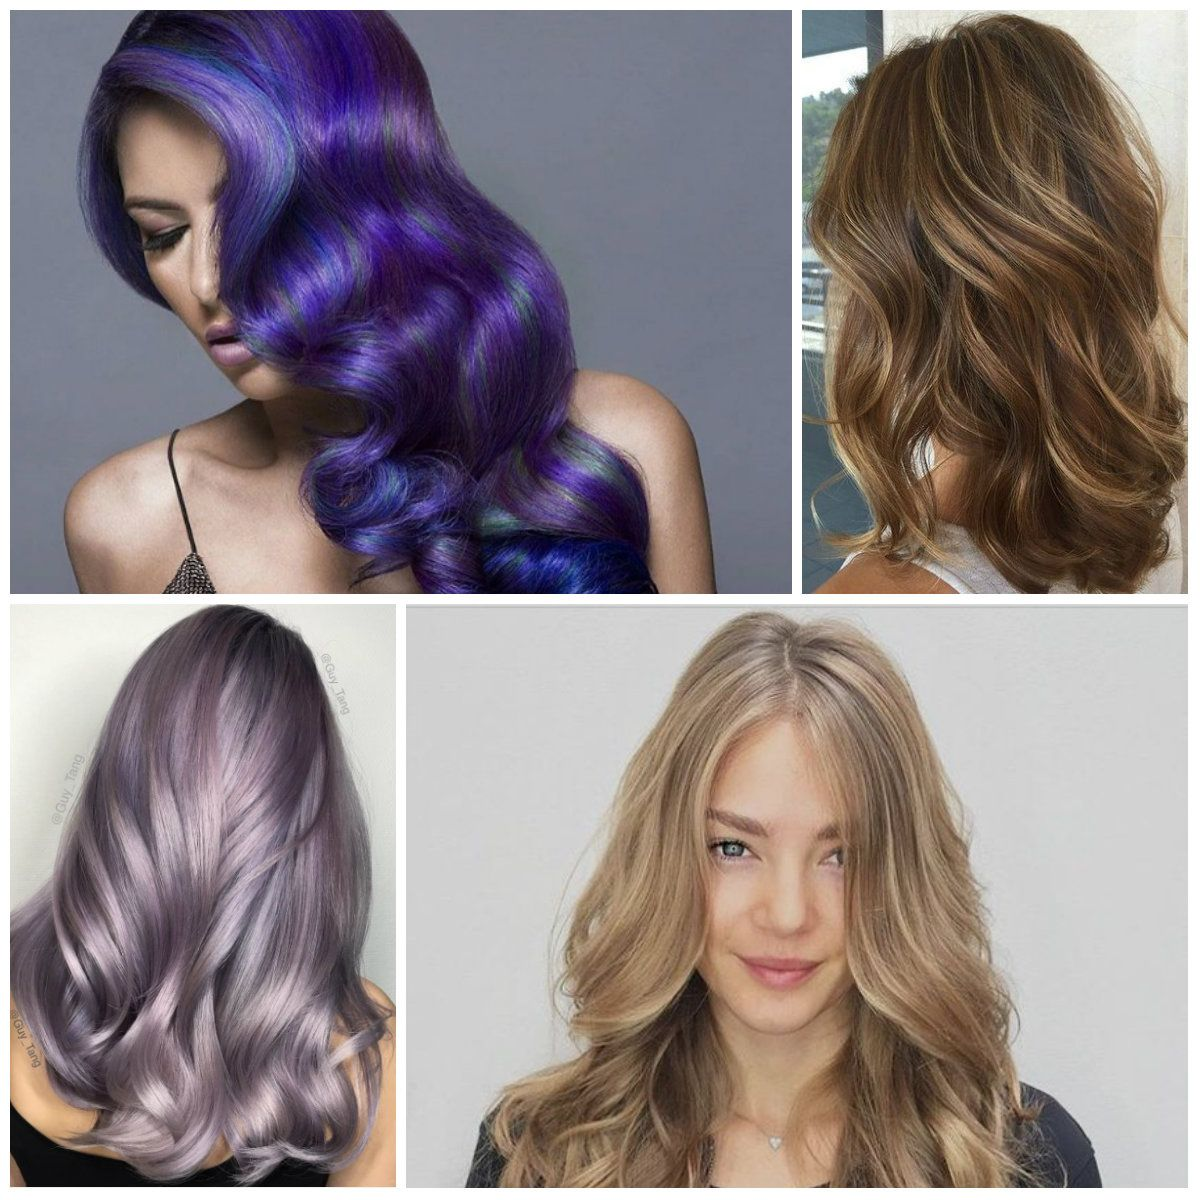 Pin By Annora On Hair Color Inspiration Pinterest Hair Colour